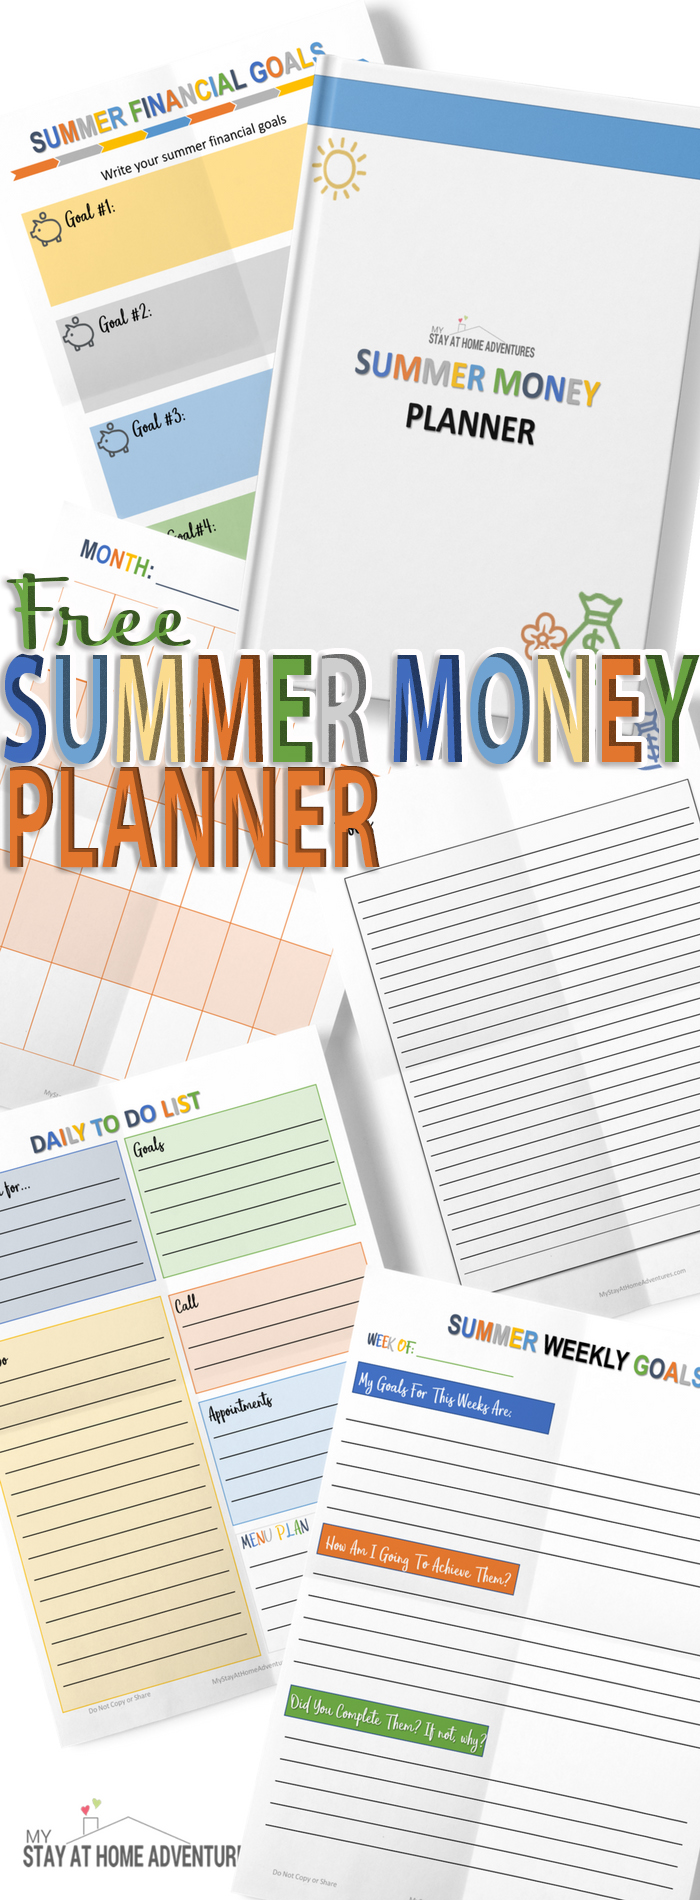 Do you have a summer budget? Are you stressing over finances that will affect your summer season? Learn seven realistic reason why you need a summer budget and download the summer planner to guide you and your finances this season.